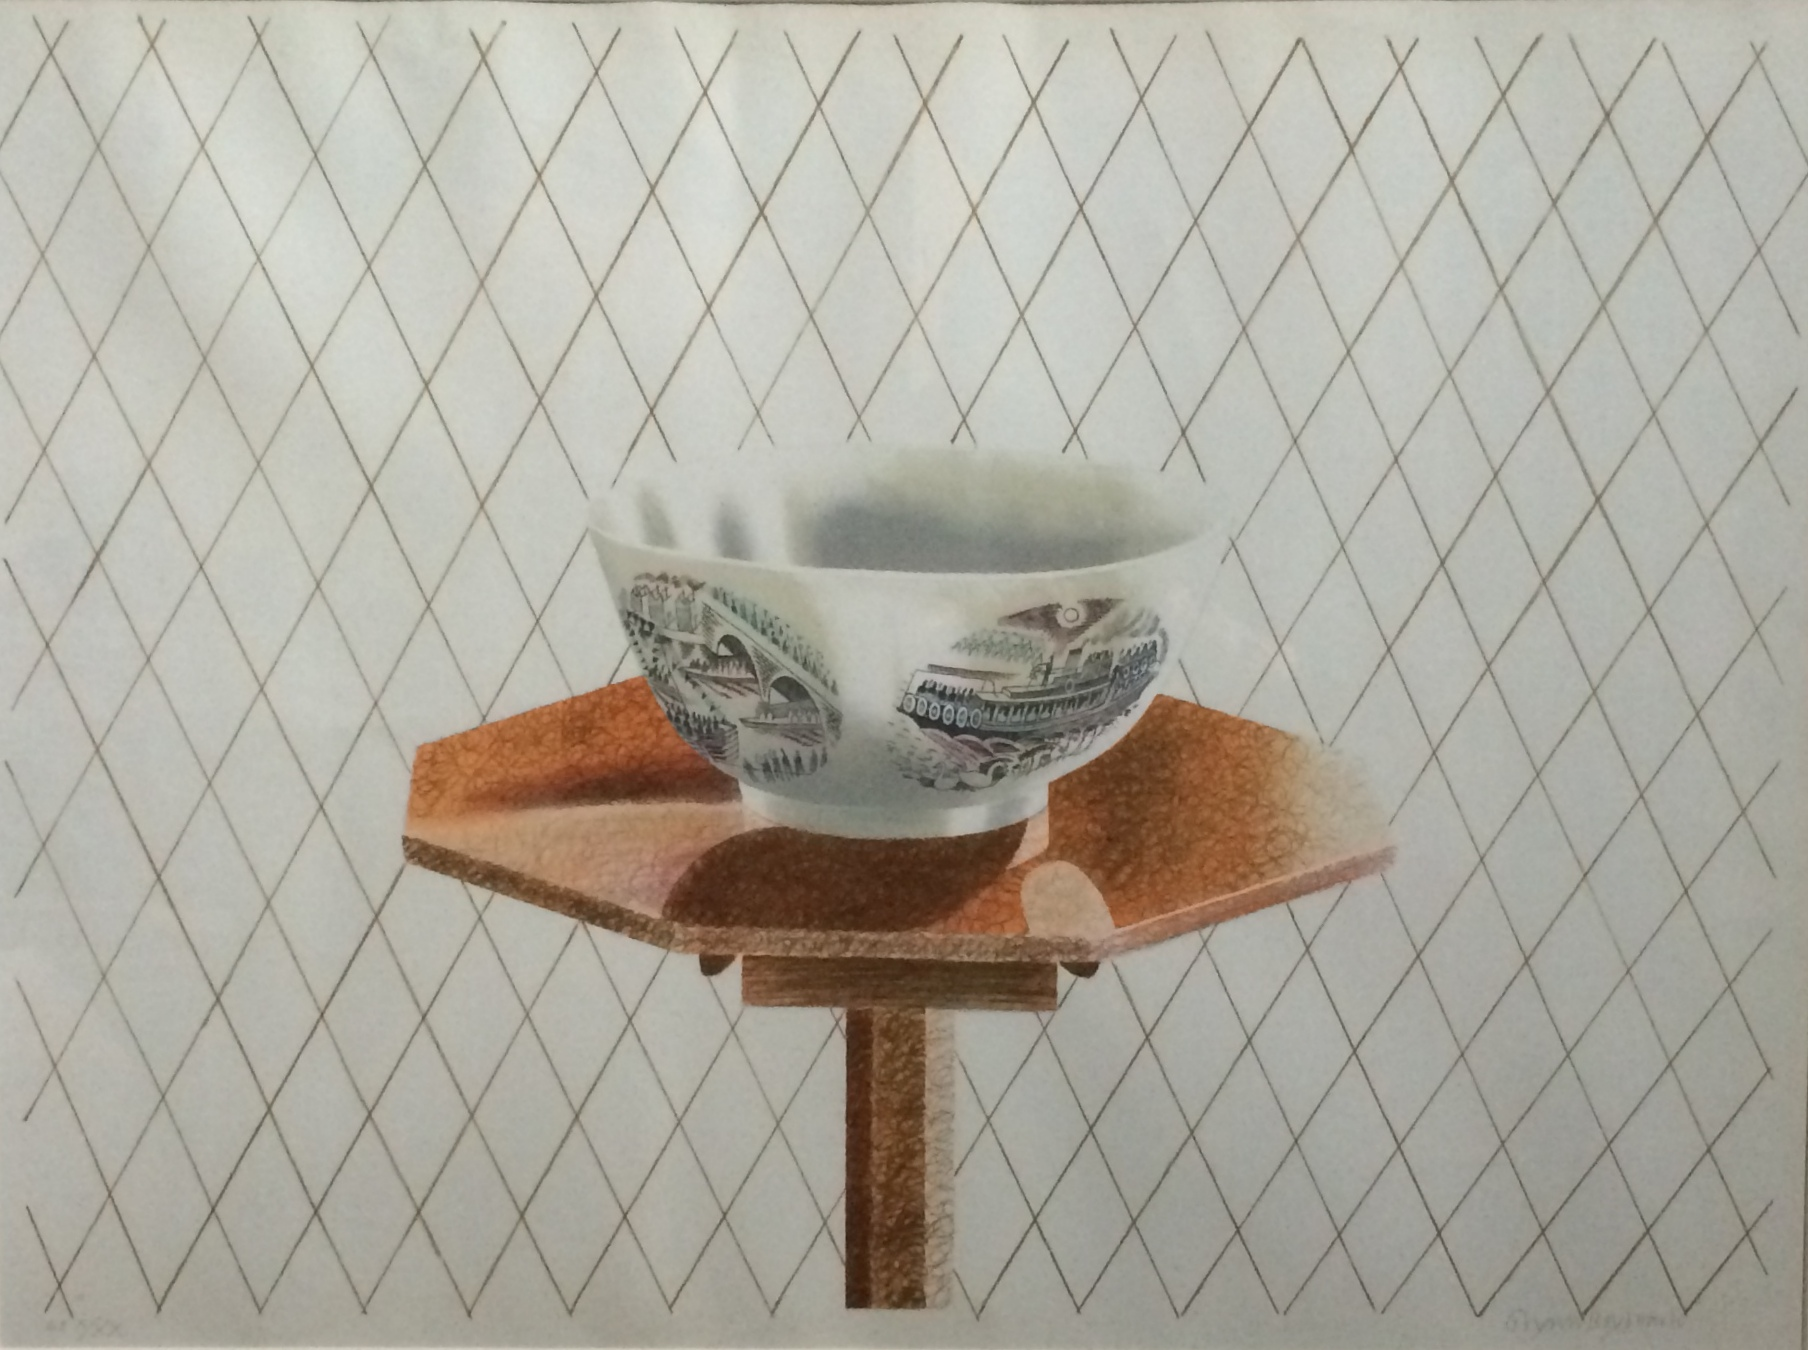 The Ravilious Bowl